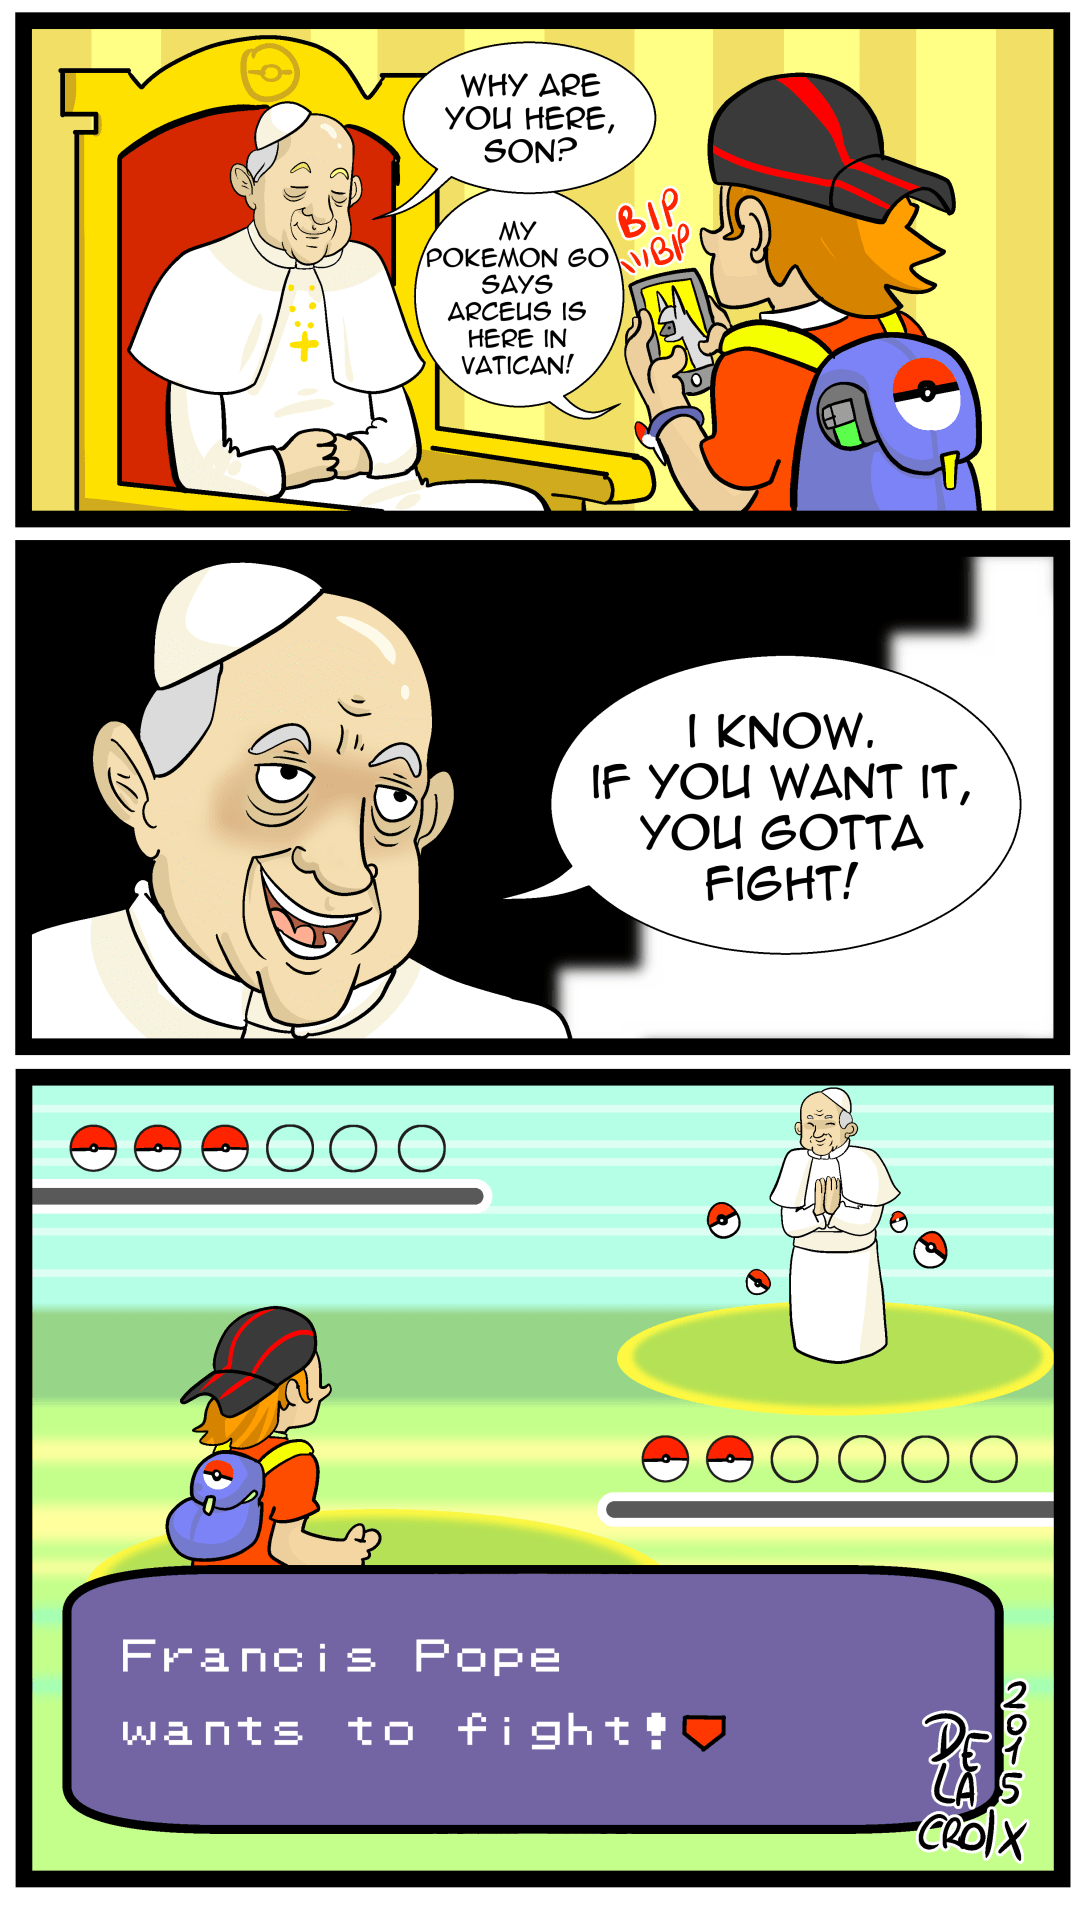 The Power of Pokémon Compels You!